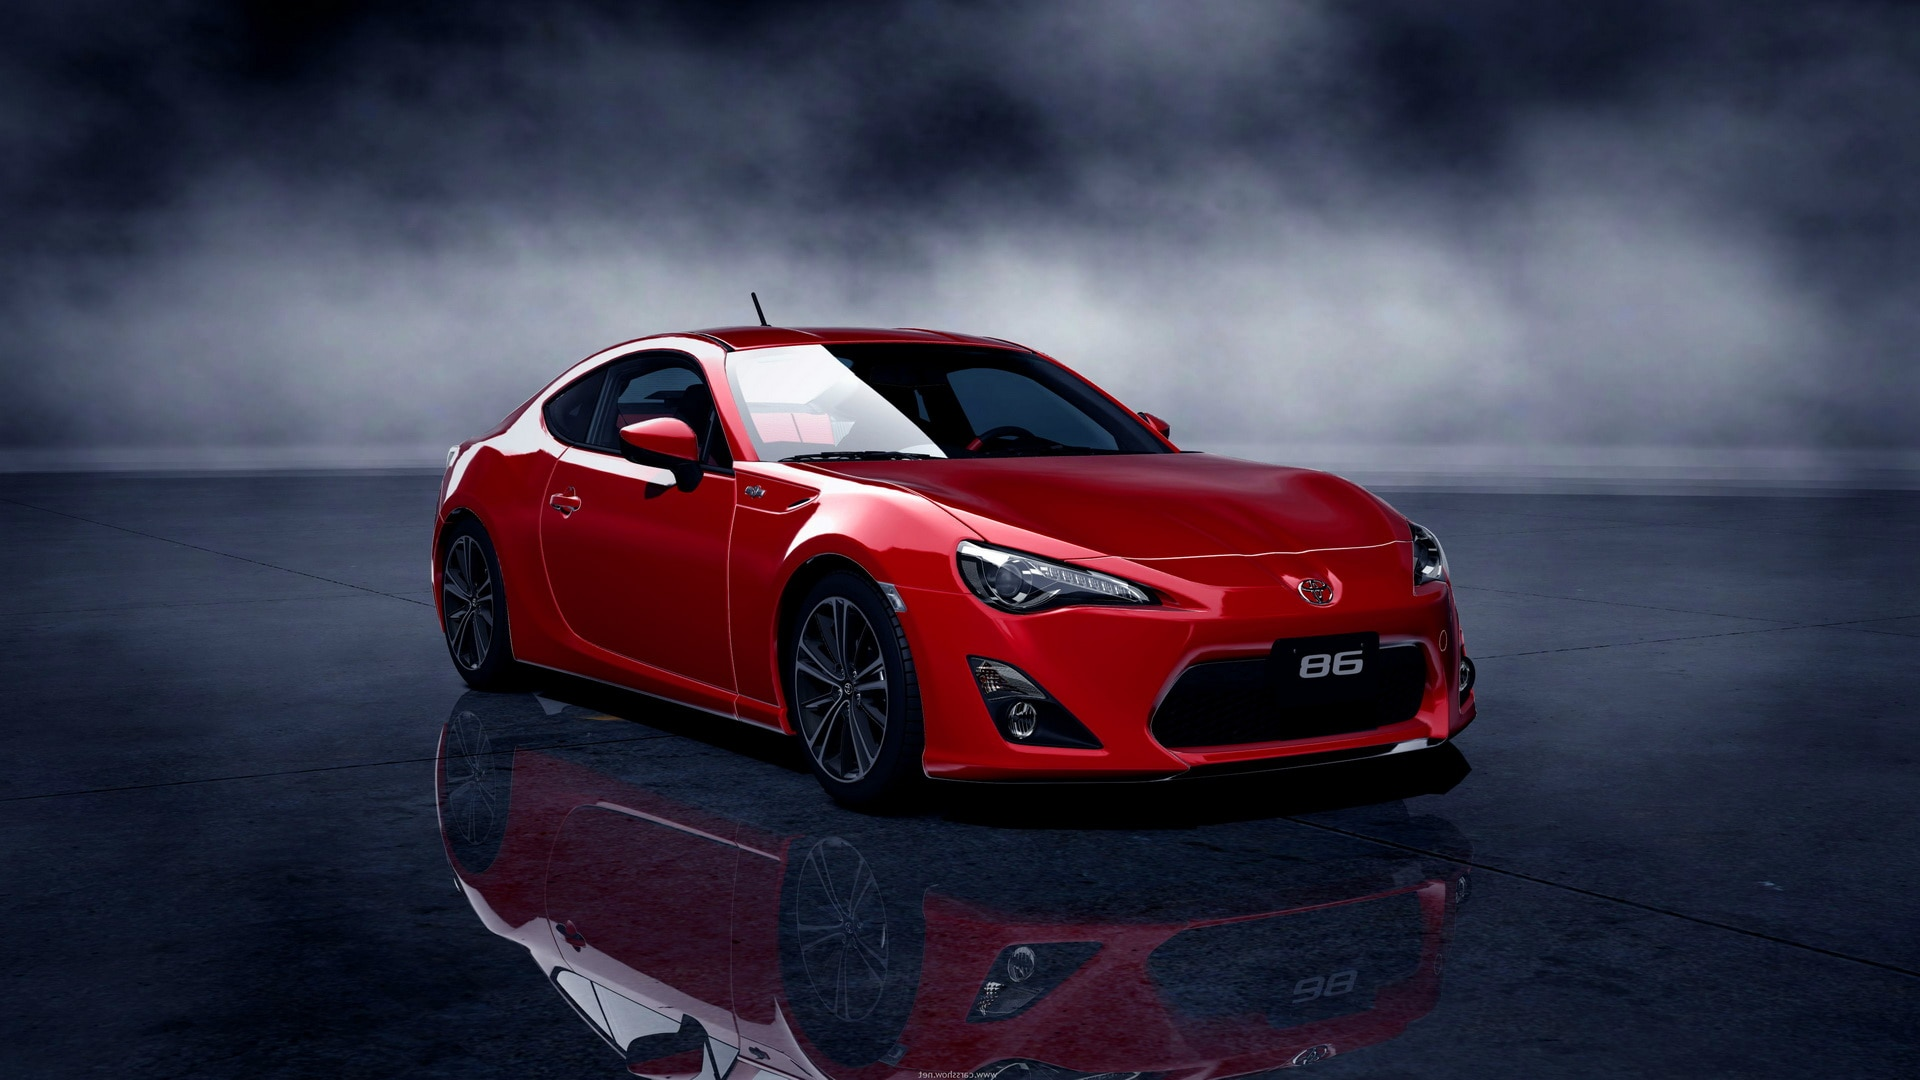 Sloane Toyota Malvern Introducing The Stylish 2013